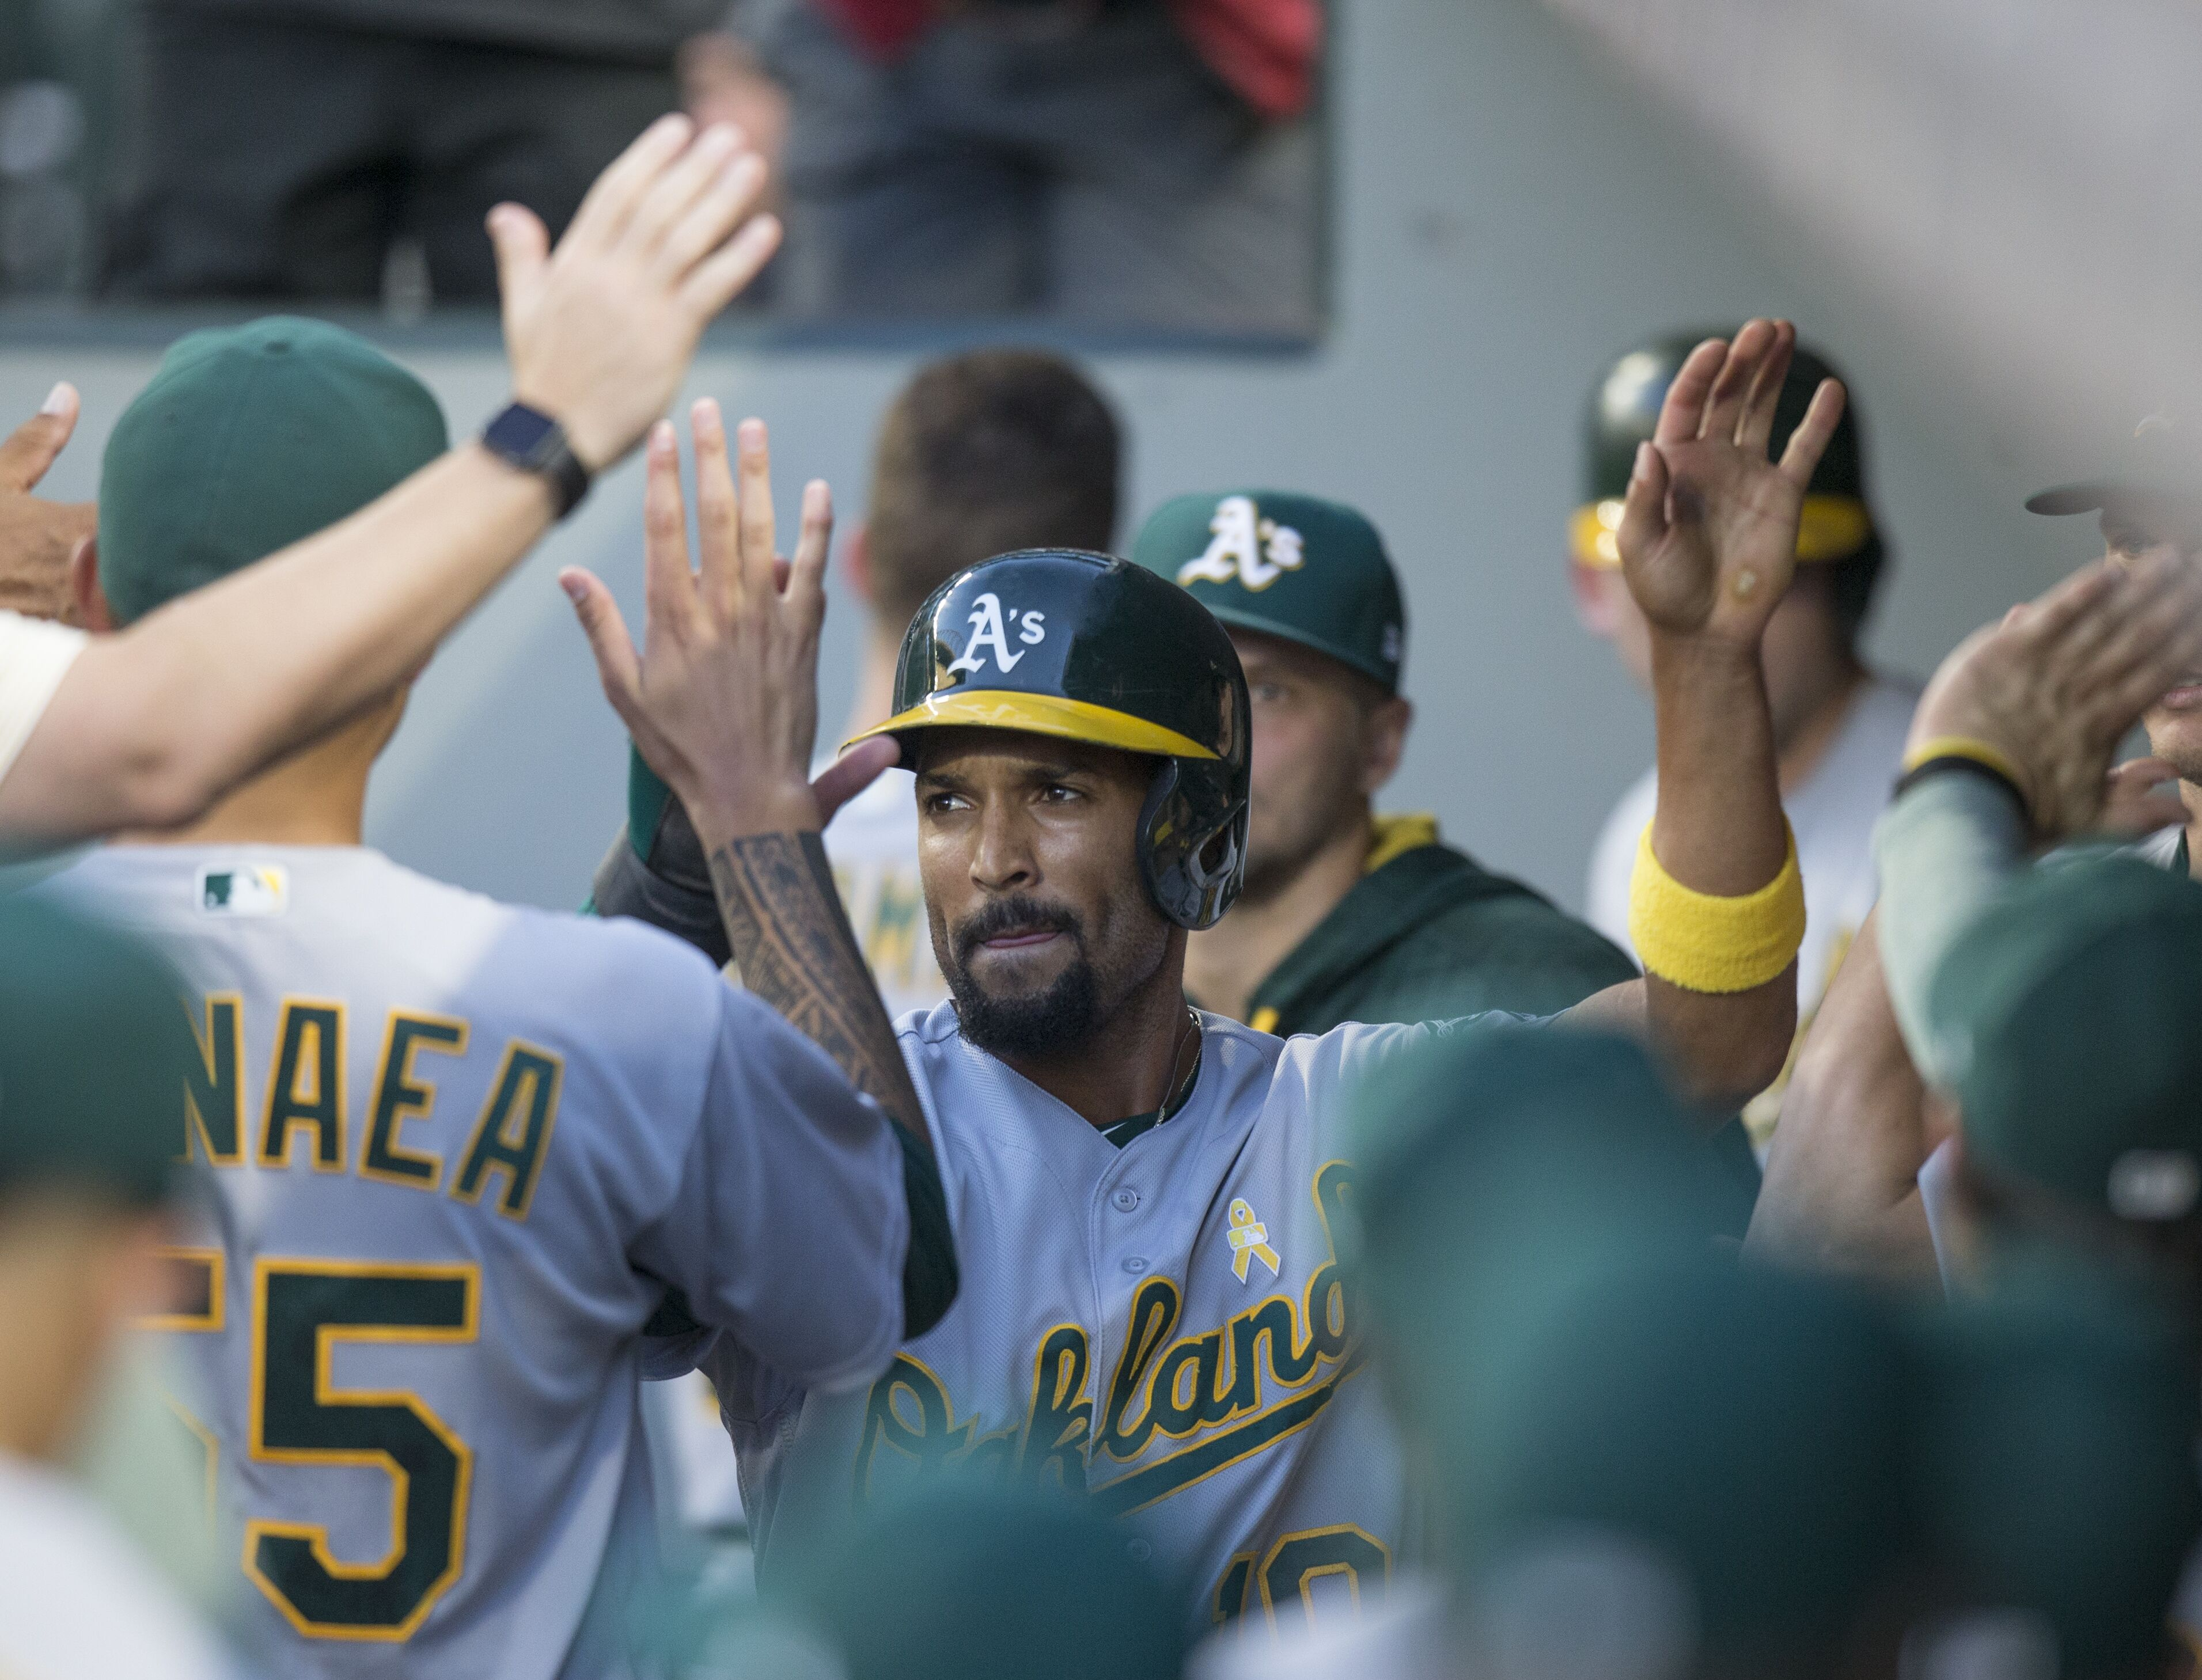 Oakland Athletics: Some losses are more painful than others